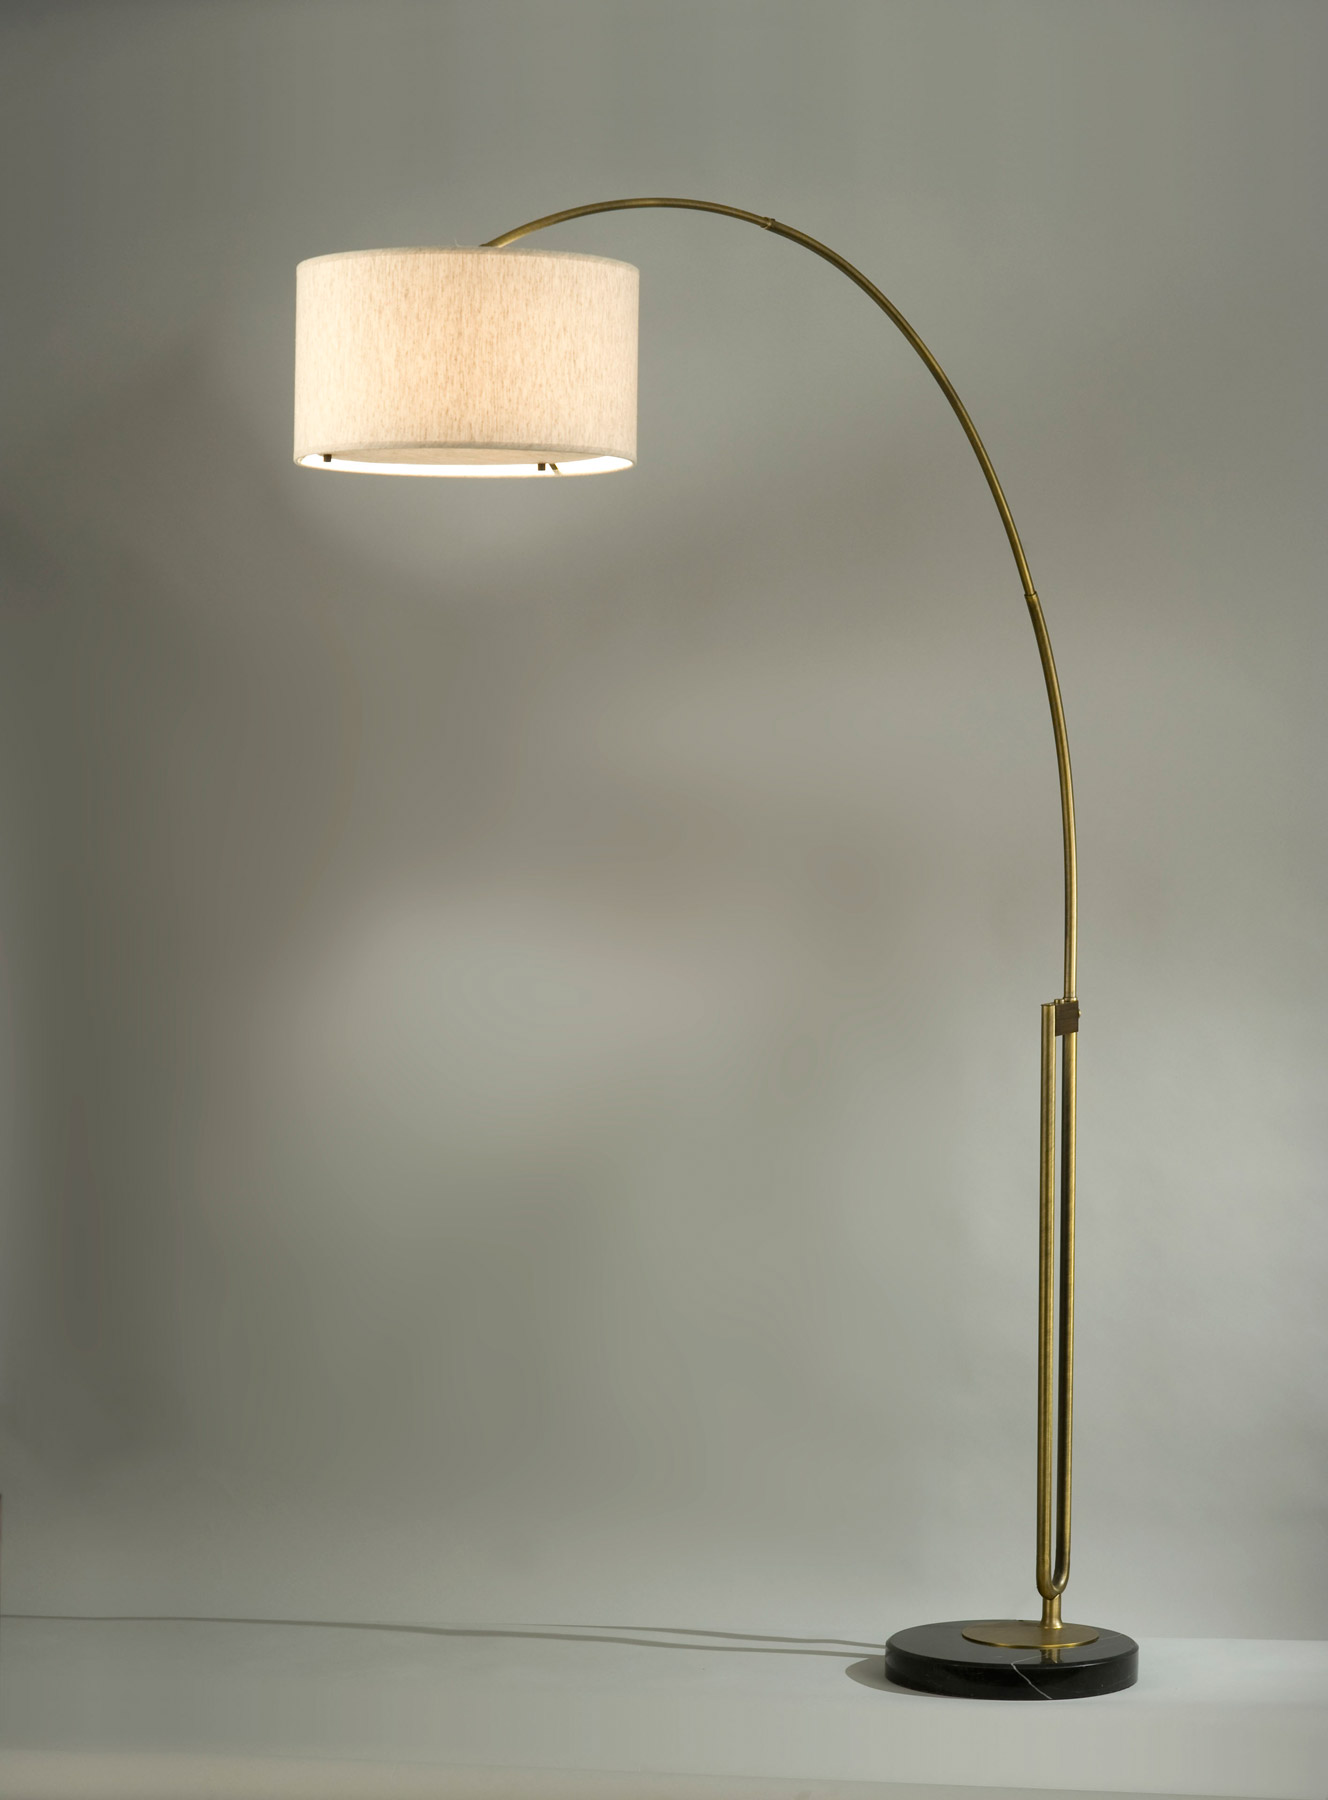 Ikea Küchen Eckunterschrank ~   Floor Lamp Brushed and Arc Floor Lamp under Living Room With Floor